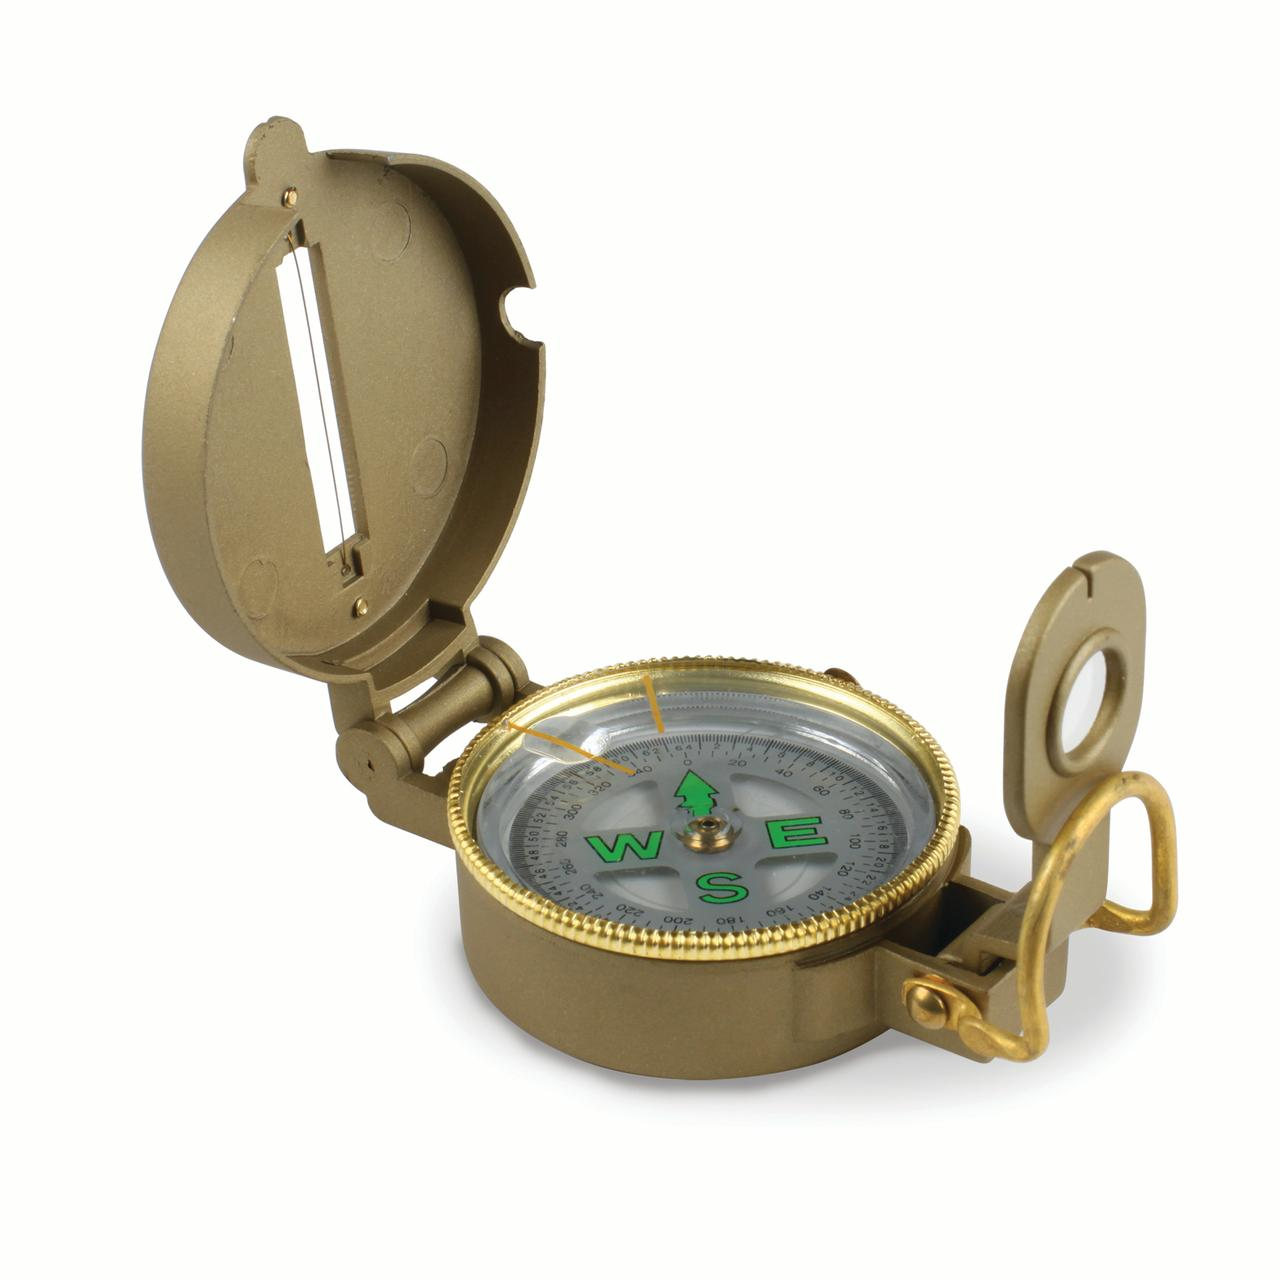 Stansport Liquid-Filled Metal Lensatic Compass by Stansport